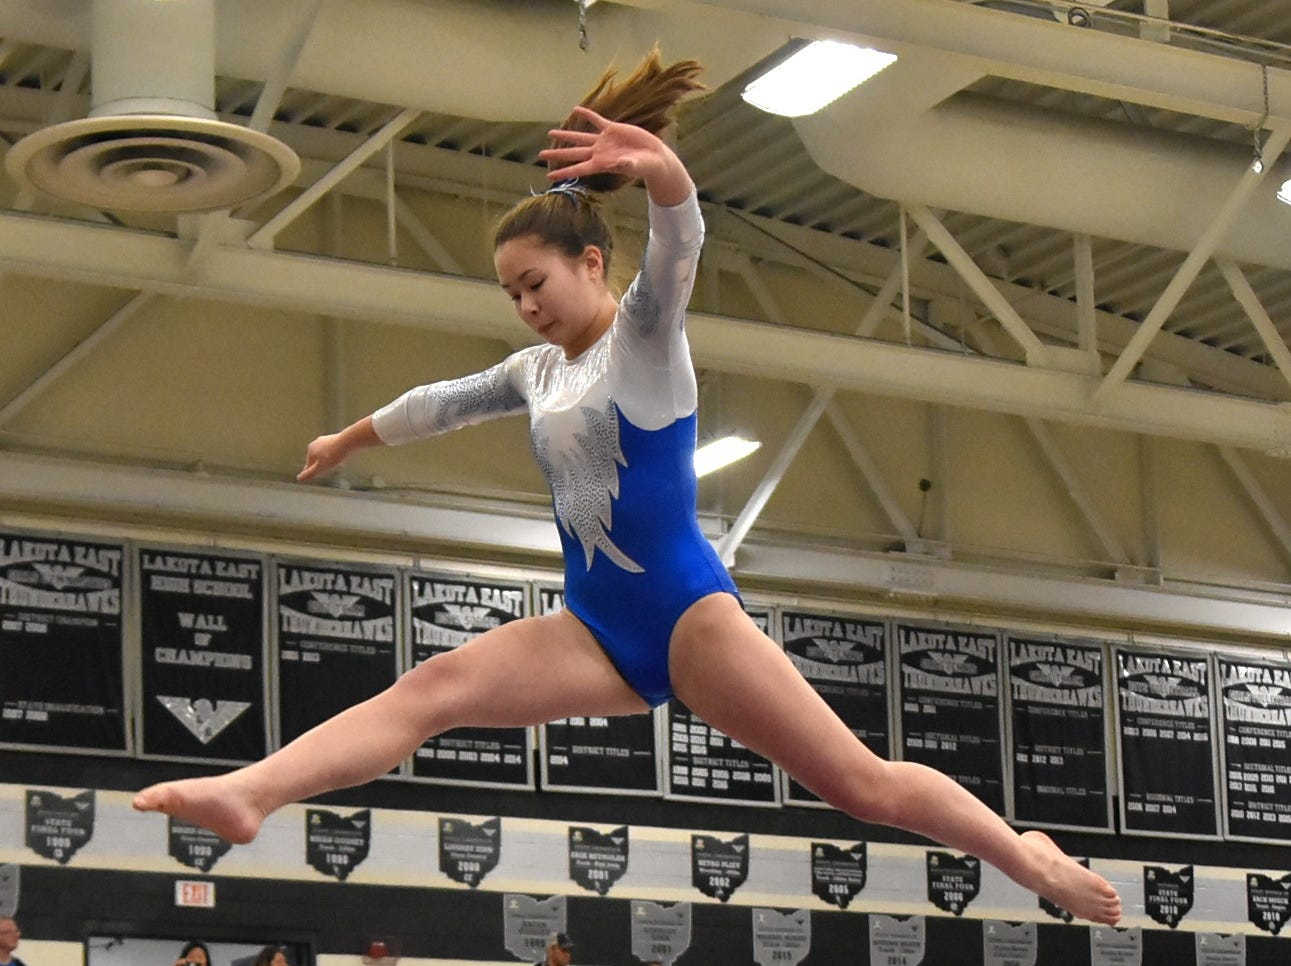 Seven Hills' Caroline Corbett scores high marks for her performance on the Beam at the 2018 Southwest Ohio District Gymnastics Championships, Feb. 24, 2018.